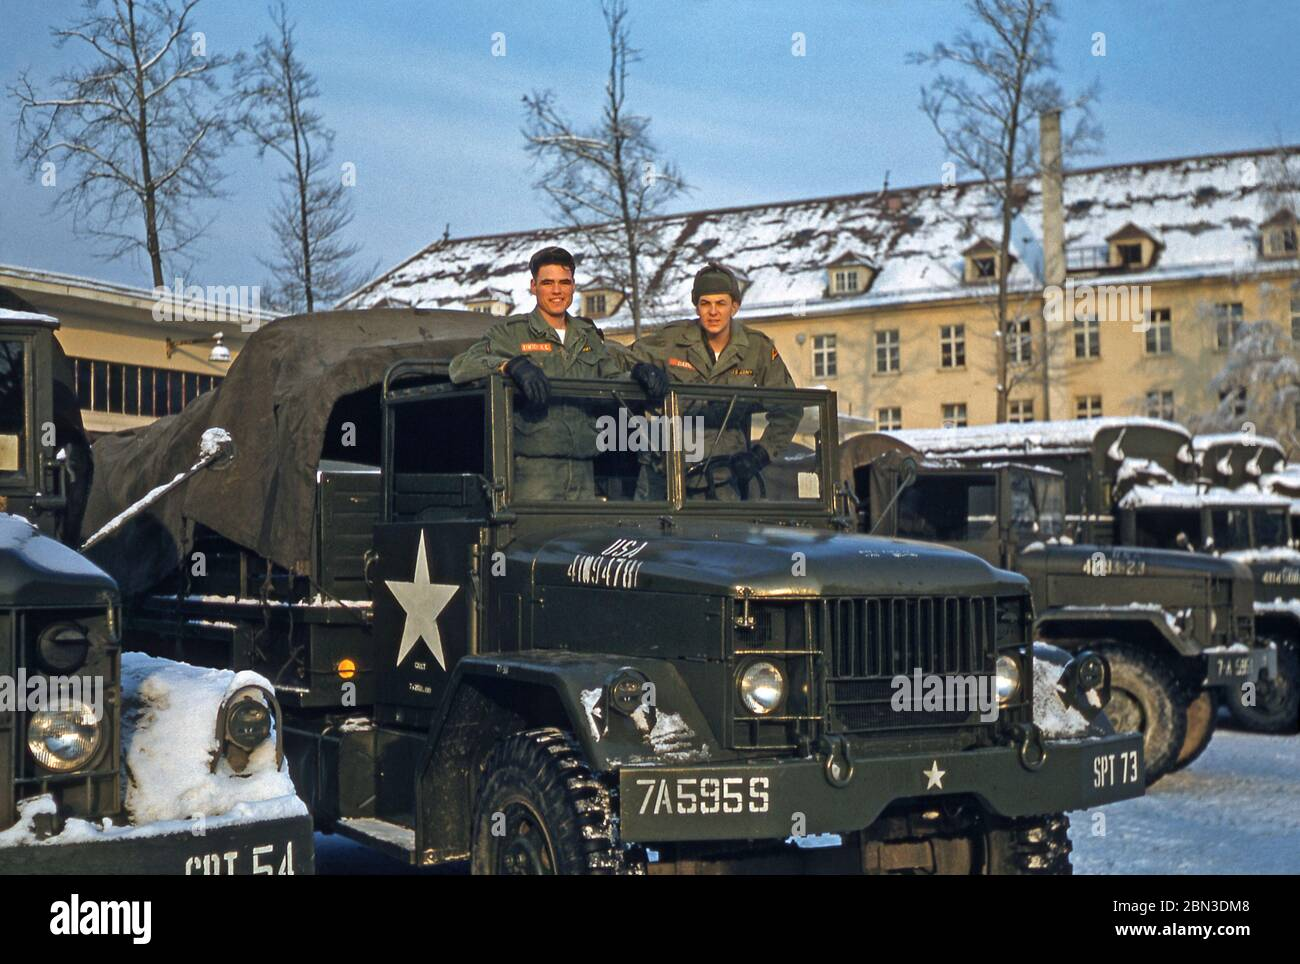 US Army soldiers stationed in Germany in the mid-1950s – two members of the 160th Signal Group are pictured on a military vehicle in the winter snow. From 1955 the 160th Signal Group provided communications throughout Germany under the US 7th (Seventh) Army during the Post-war era from an HQ at Panzer Kaserne (PK), in Böblingen (Boeblingen) near Stuttgart. The US 7th Army's HQ was at nearby Patch Barracks. Stock Photo